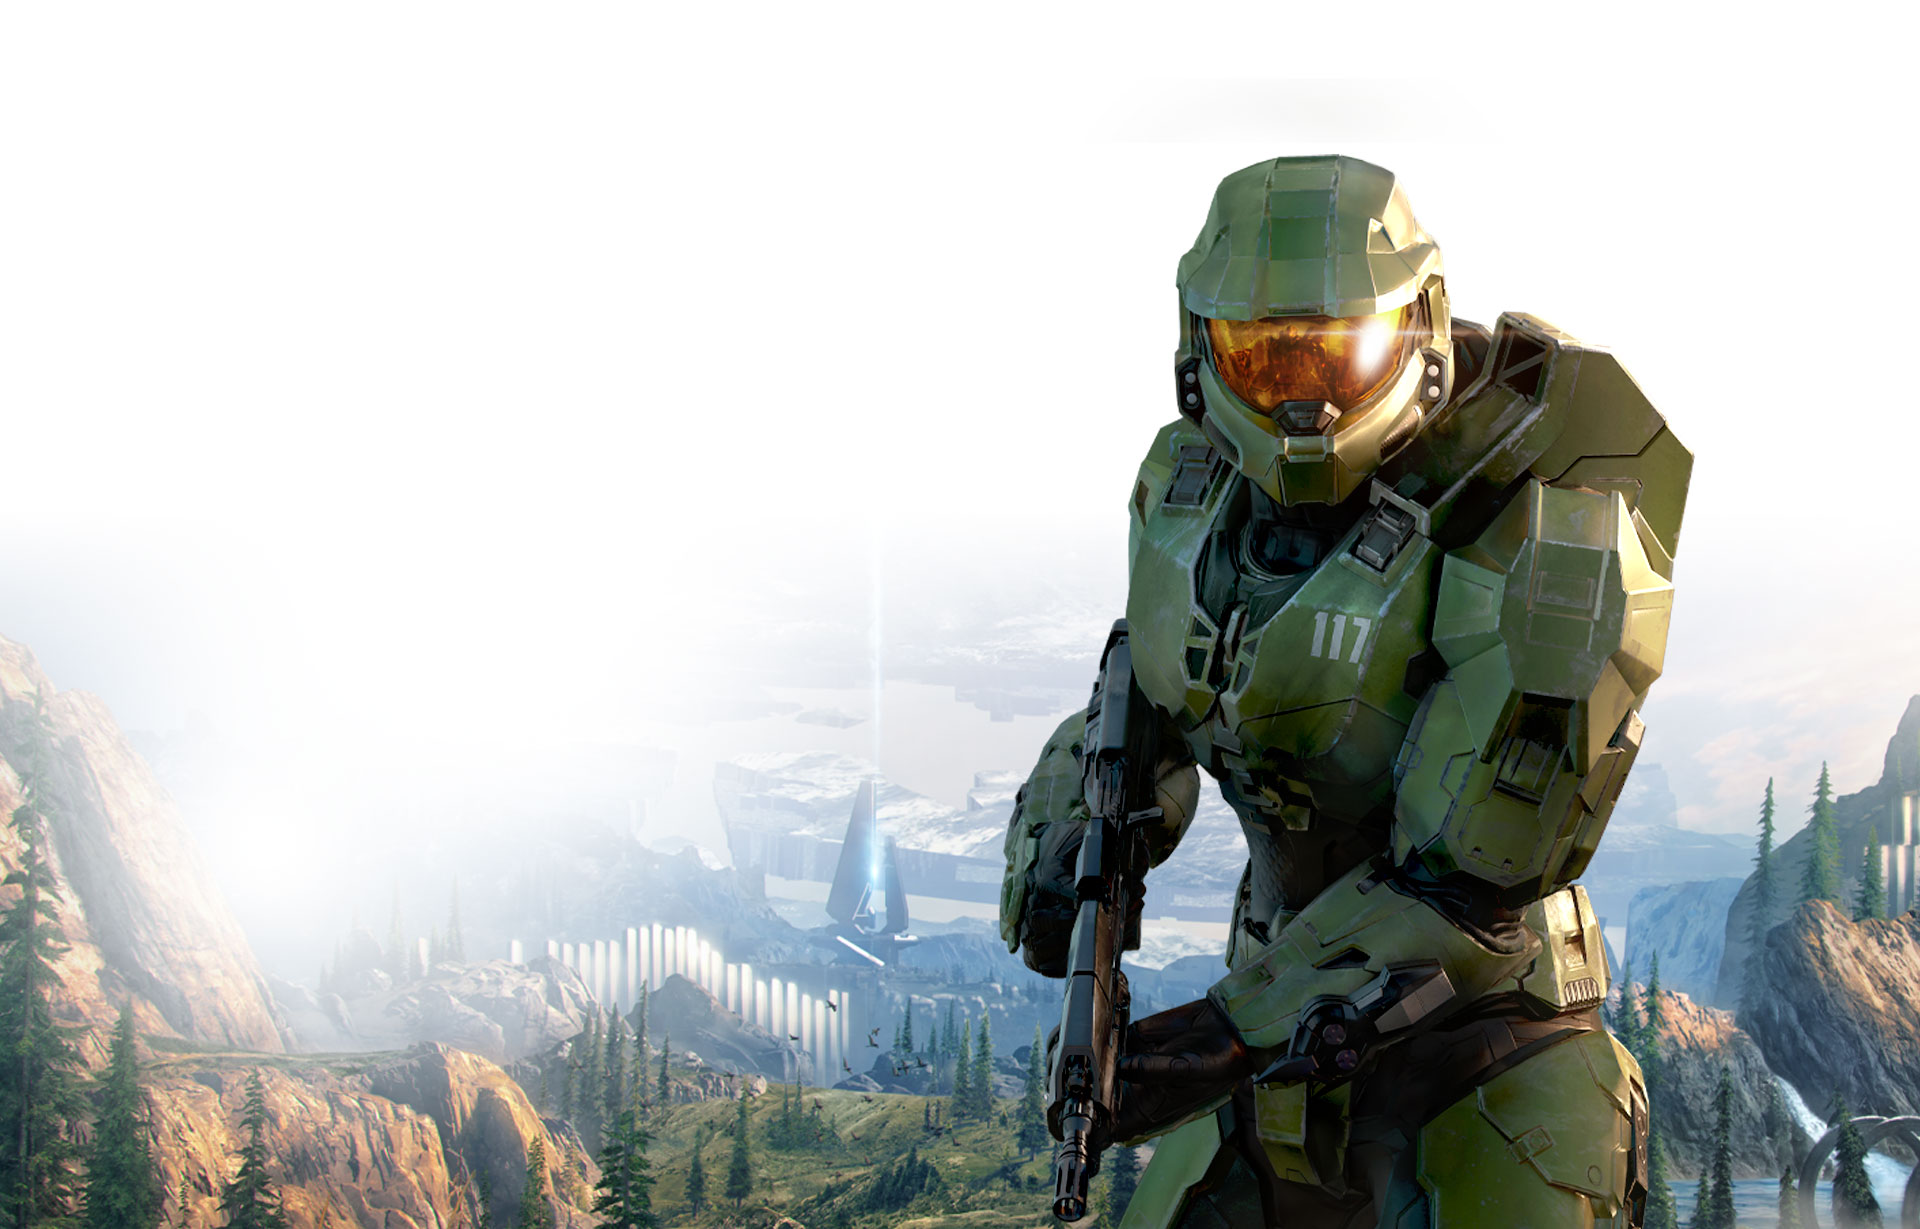 Master Chief with Halo in the background